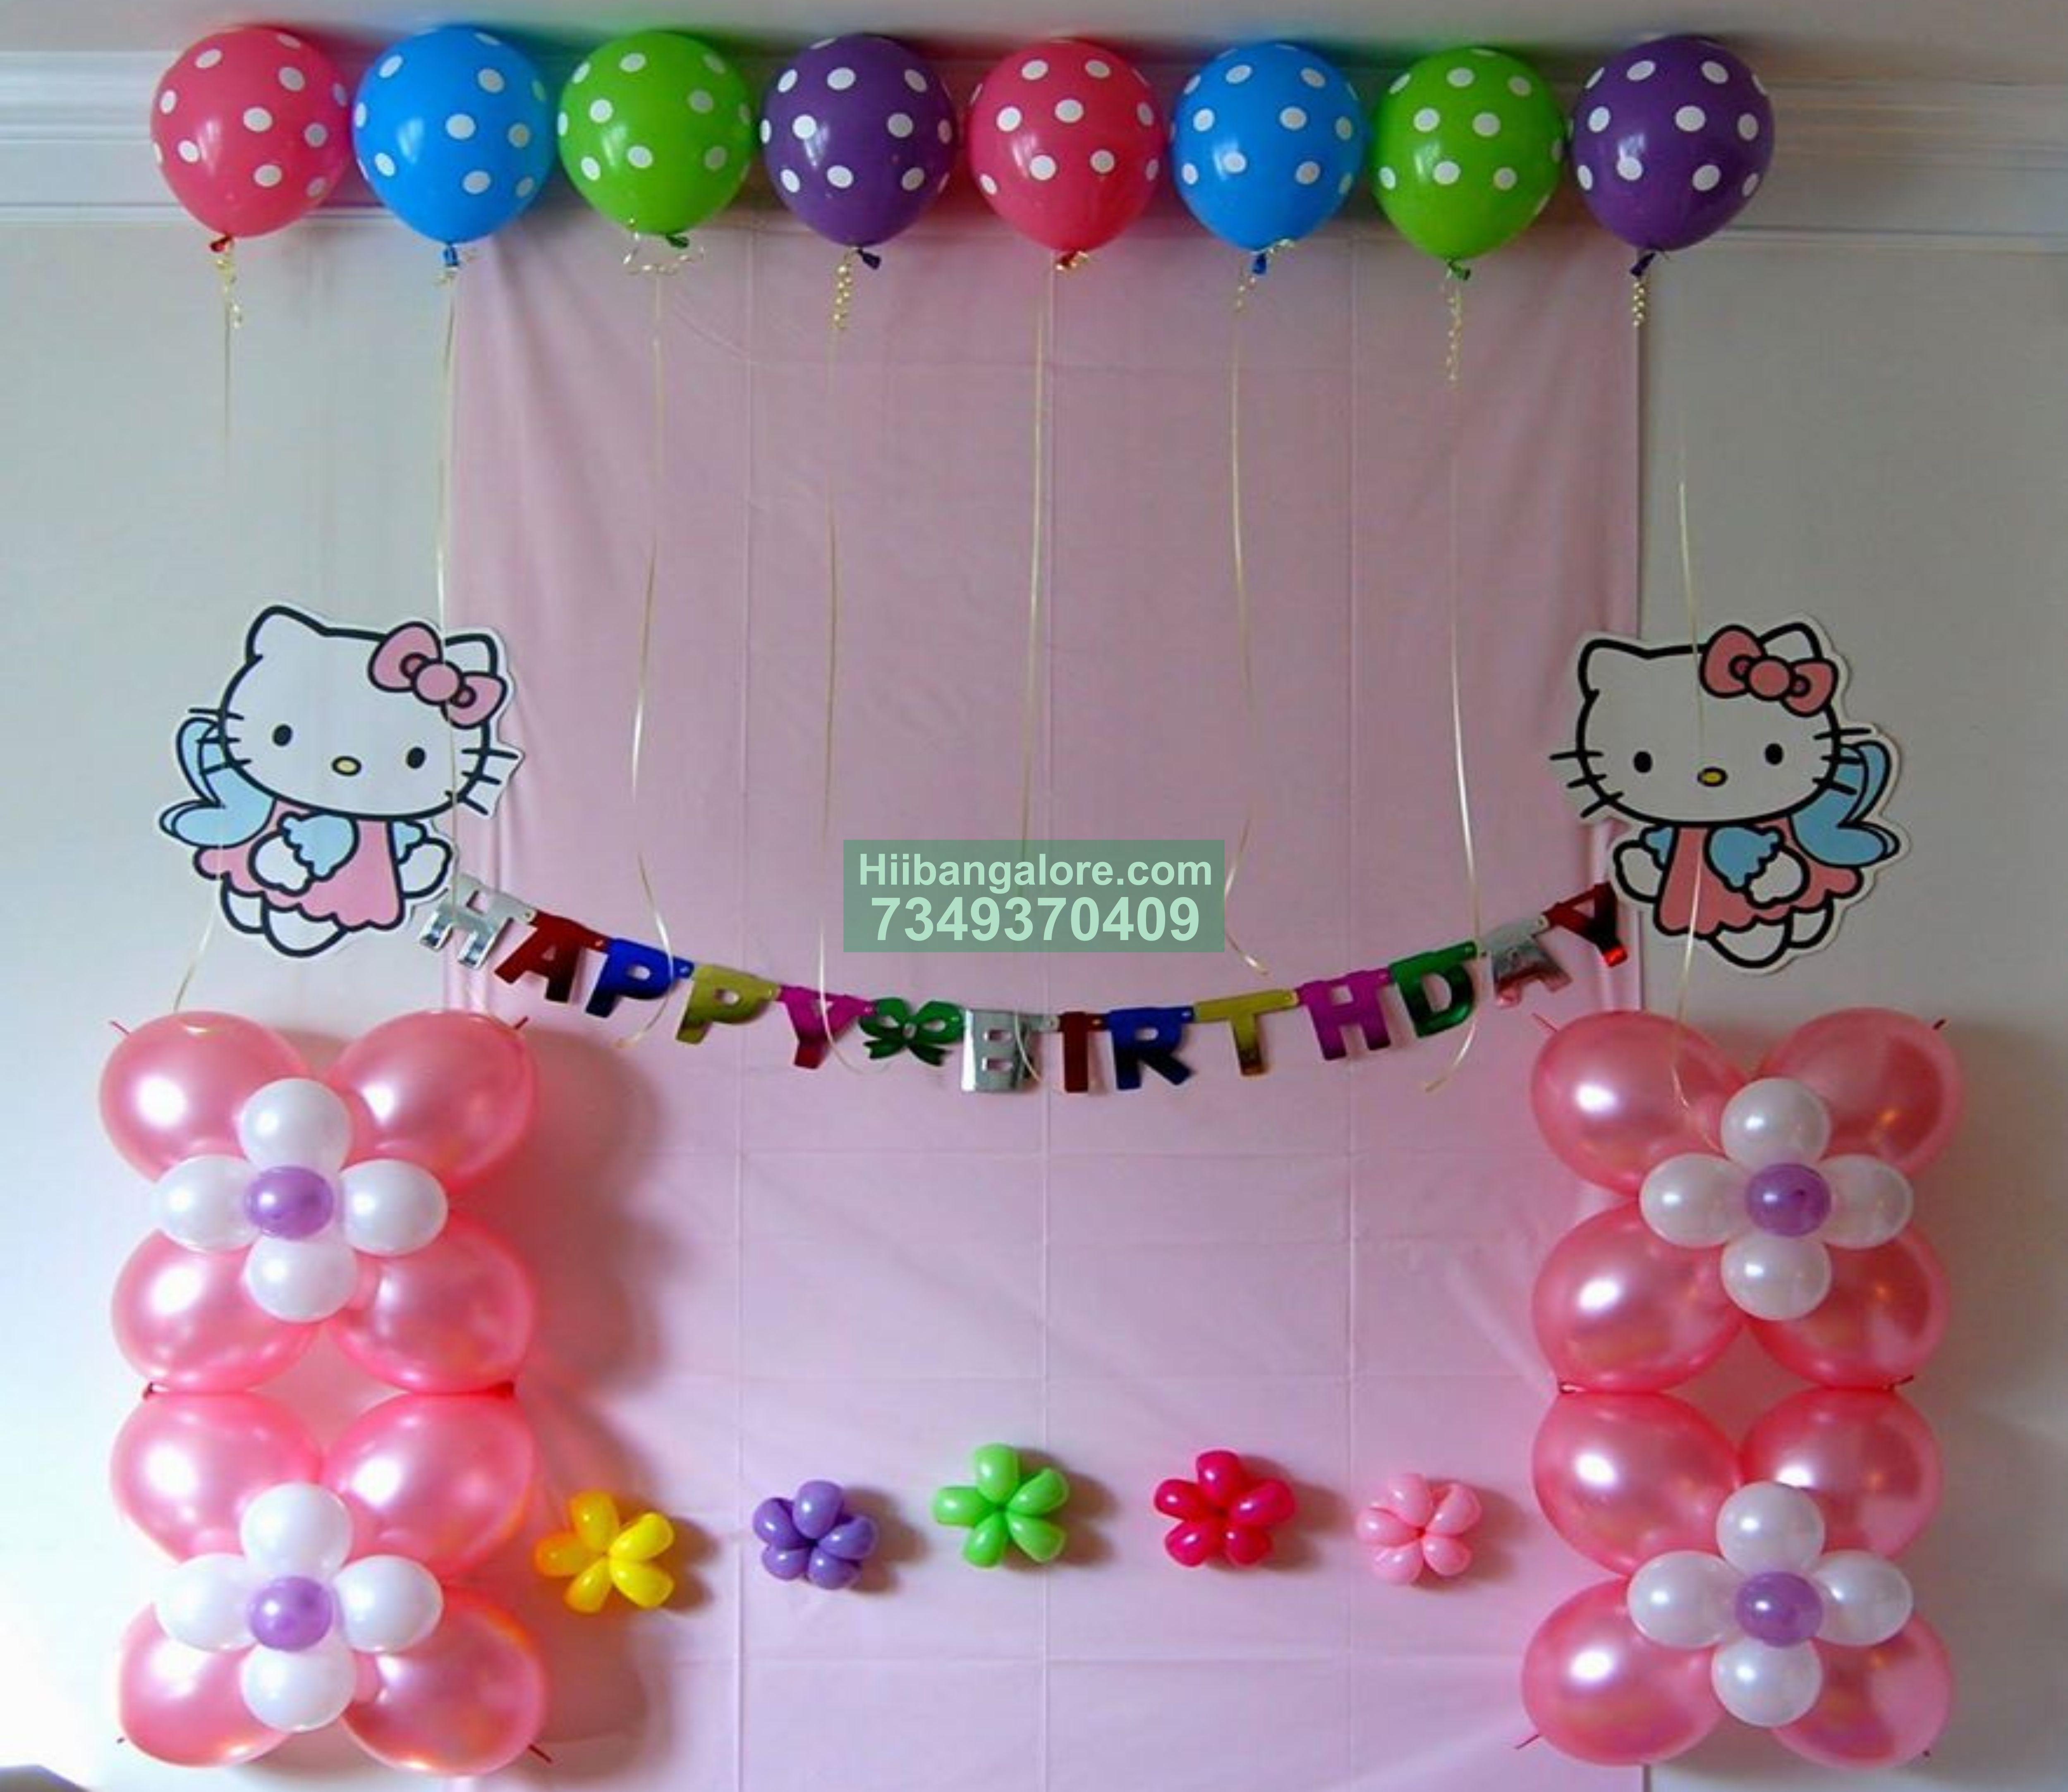 Simple Decoration Ideas For Birthday Party At Home Like Going All Out For Birthdays Here Are Some Inspirational Ideas And Plans To Make Your Party Amazing Fun And Great Looking